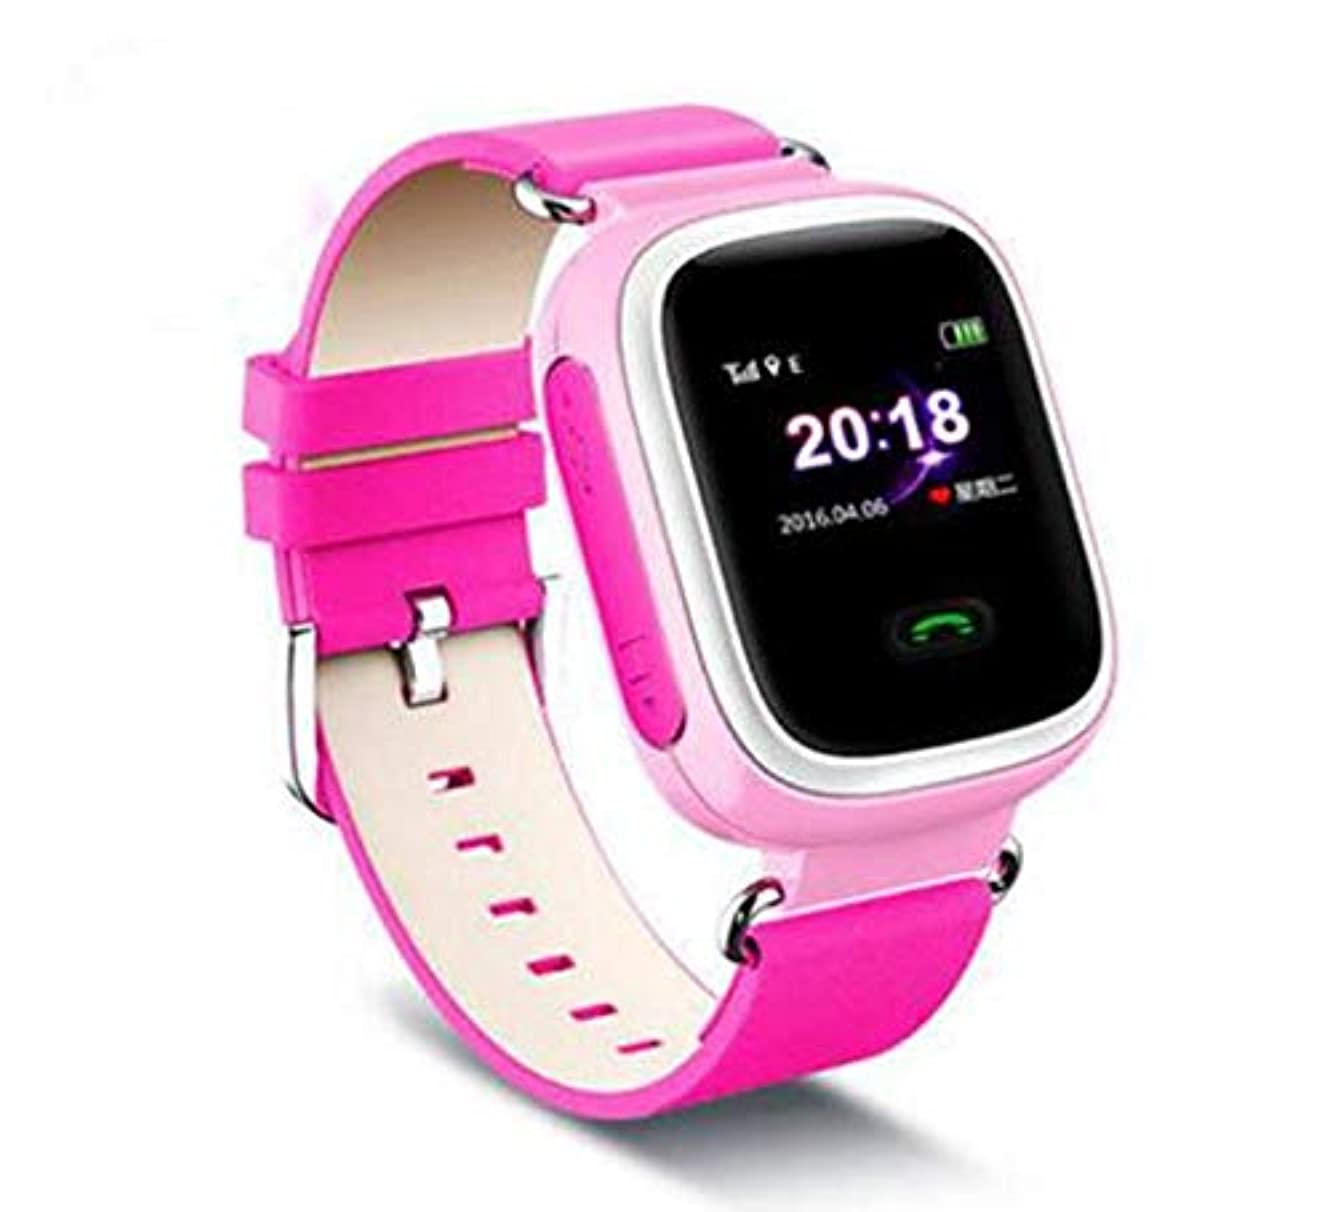 FAIYIWO Smart Watch Kids SOS Outdoor Emergency Smartwatch Waterproof Bluetooth Watch Wristband Remote FAIYIWO Pink